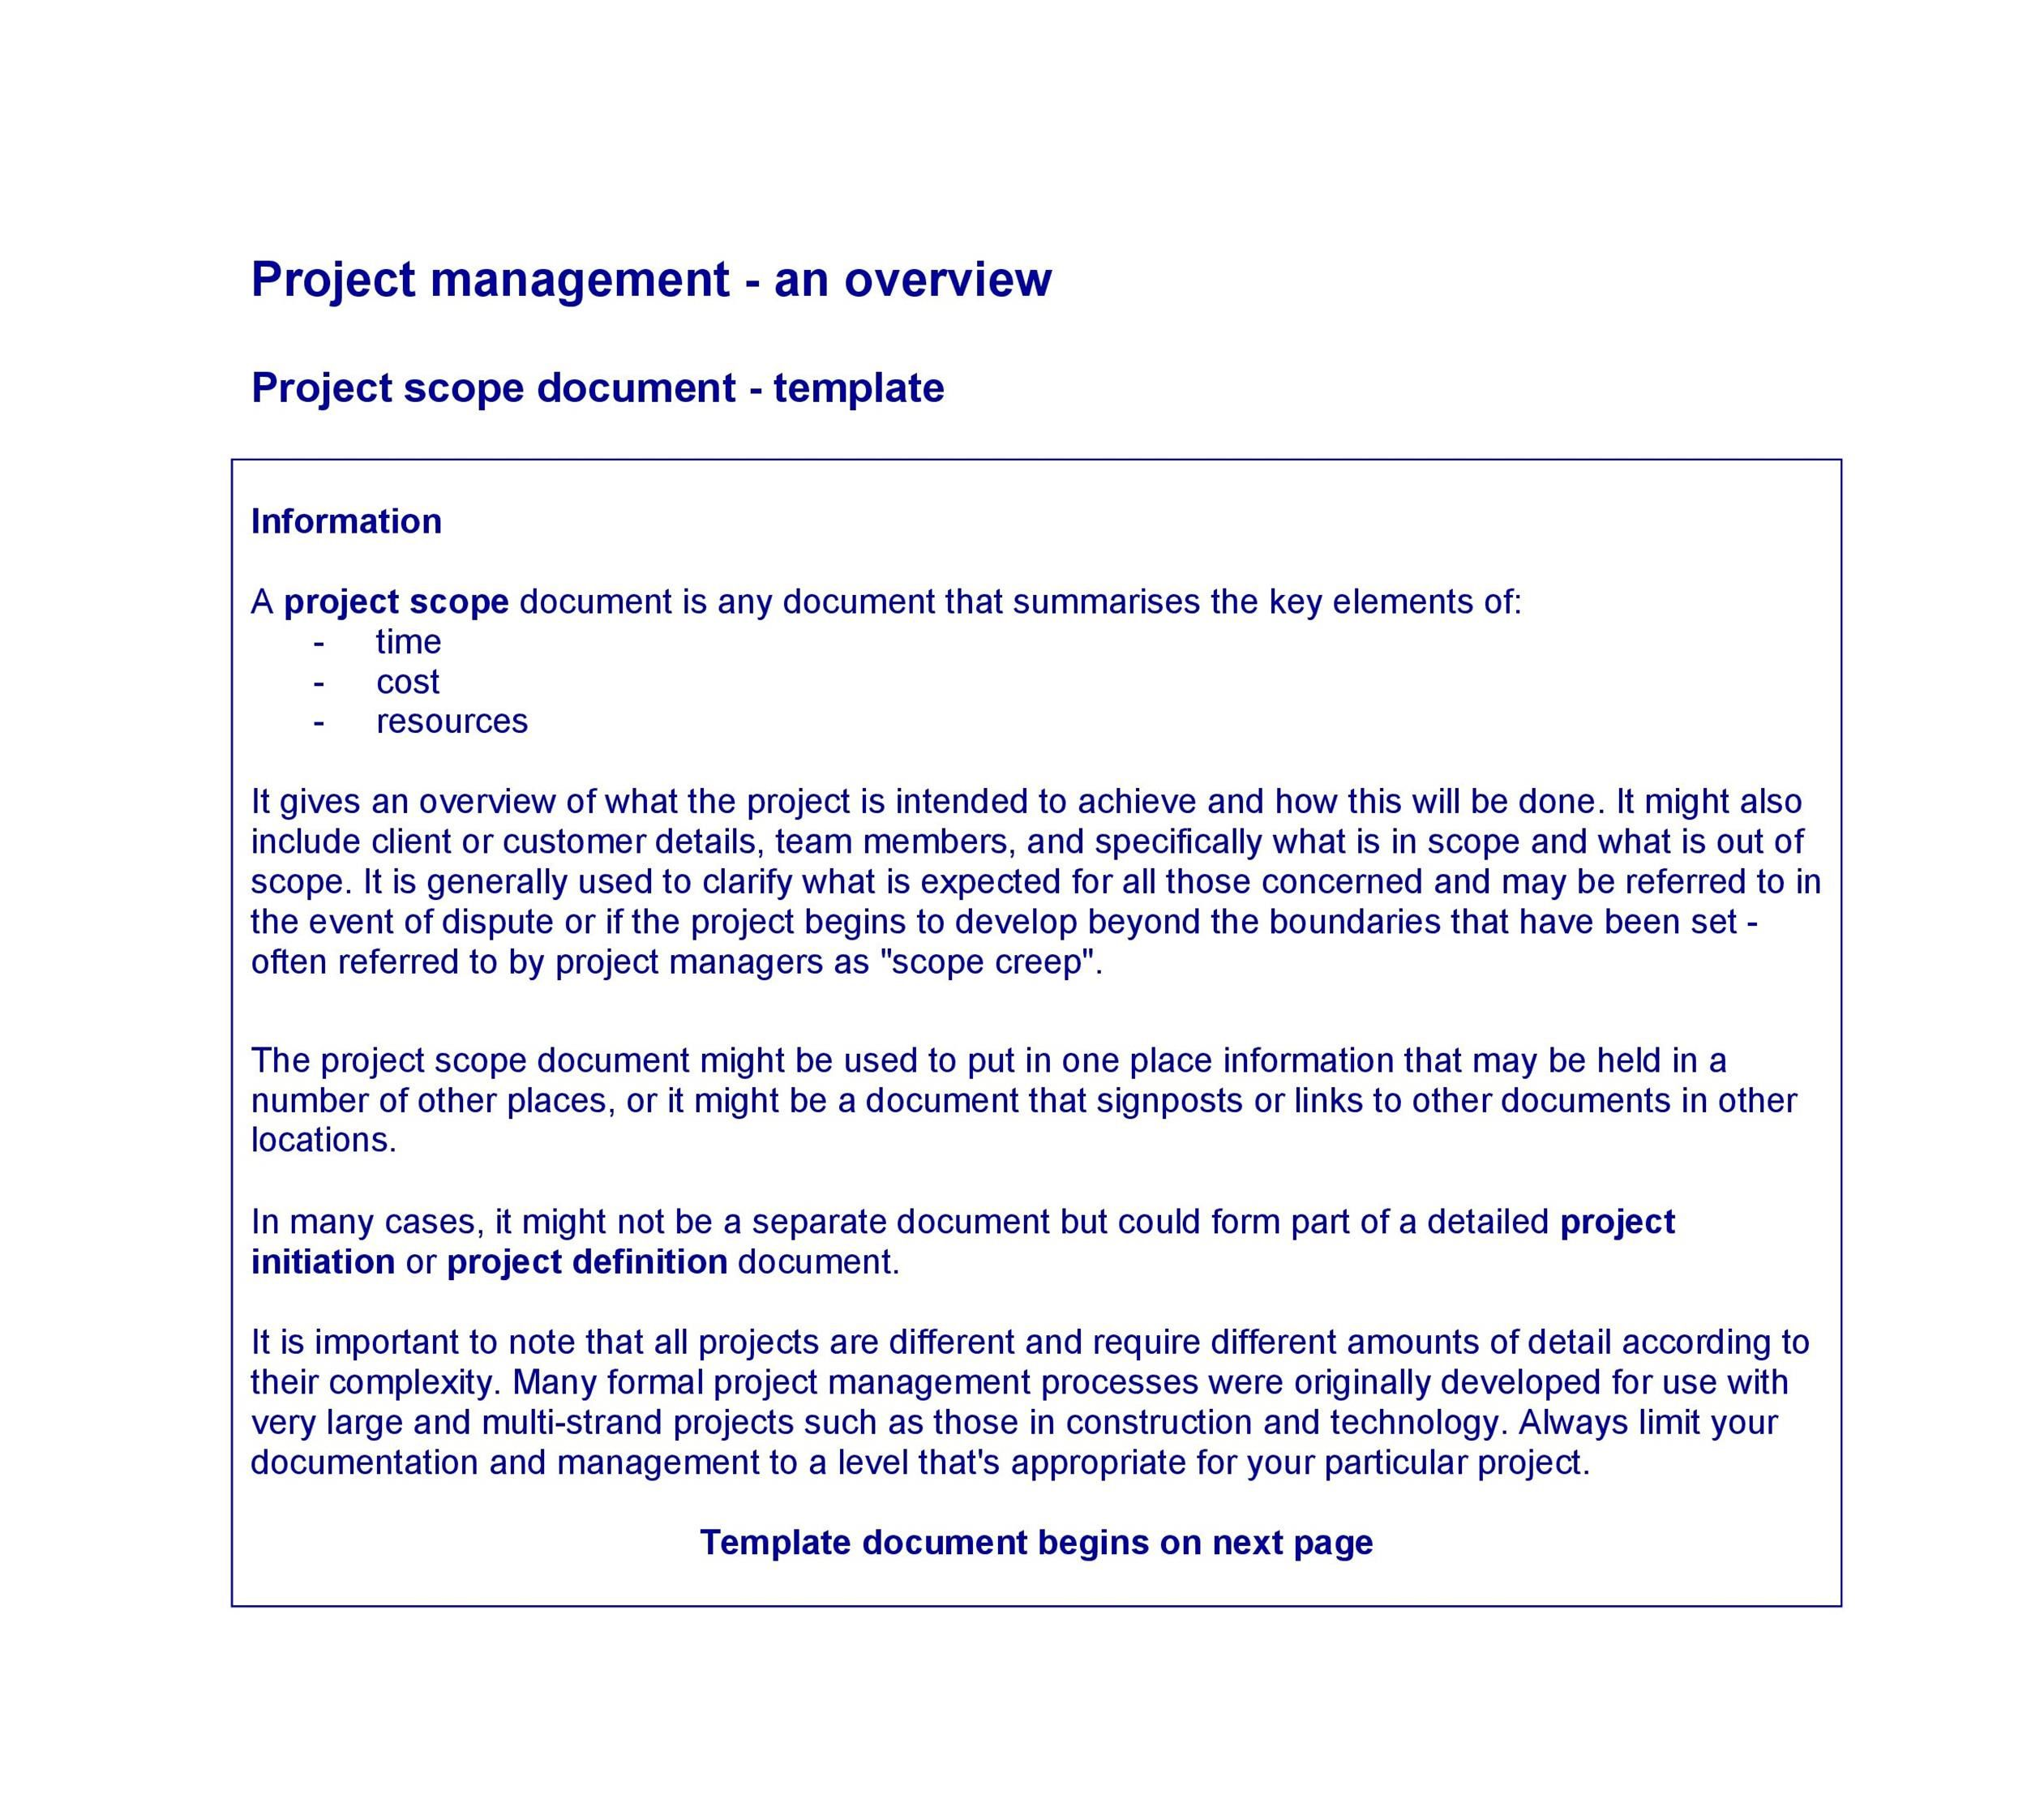 003 Excellent Statement Of Work Example Project Management Image Full